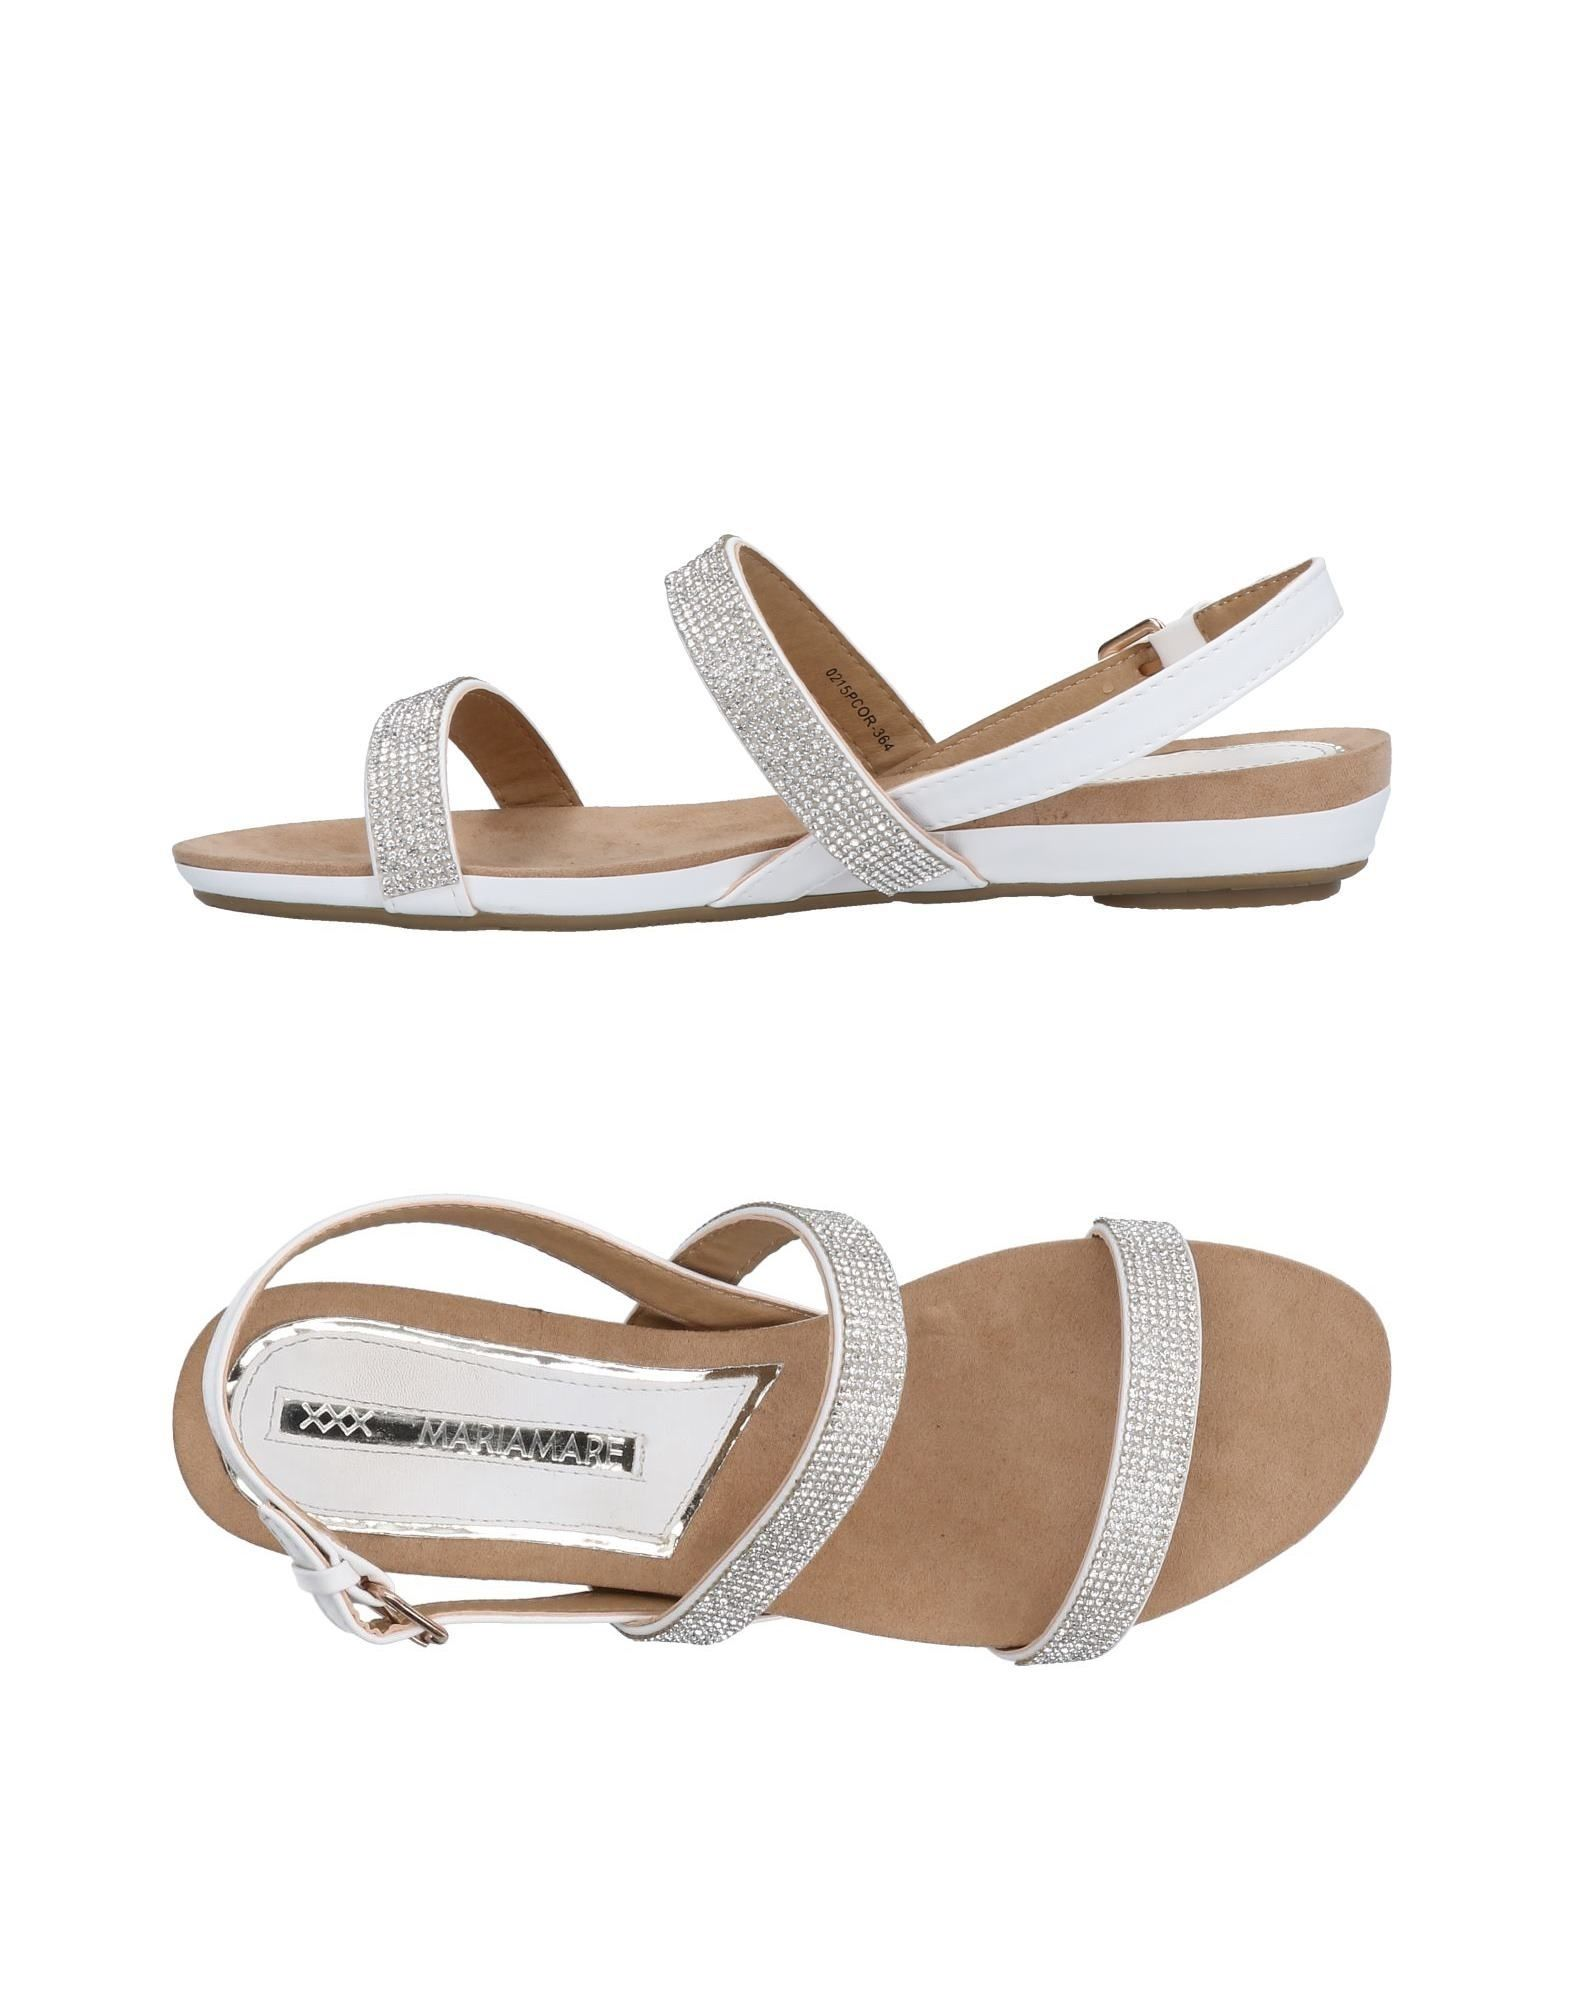 Maria Maria Mare Sandals - Women Maria Maria Mare Sandals online on  Canada - 11522473MD 9f4f62